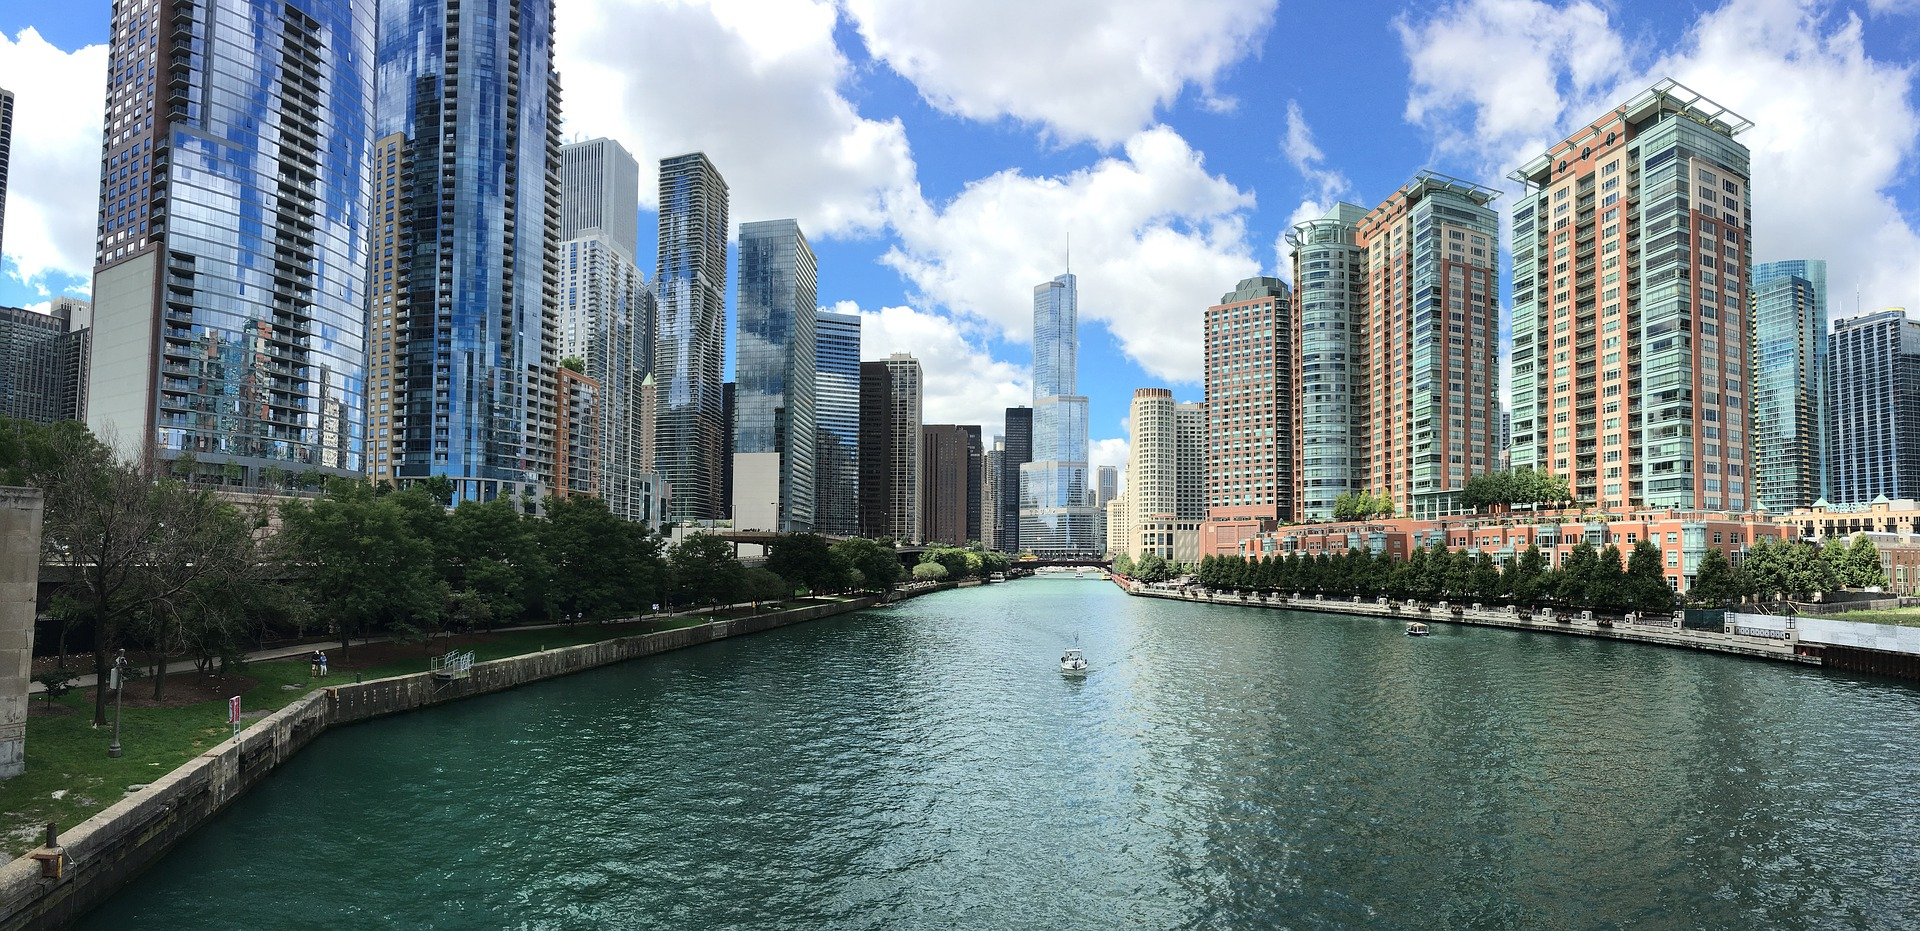 71524d86779 9 Things You Need to Know Before Moving to Chicago